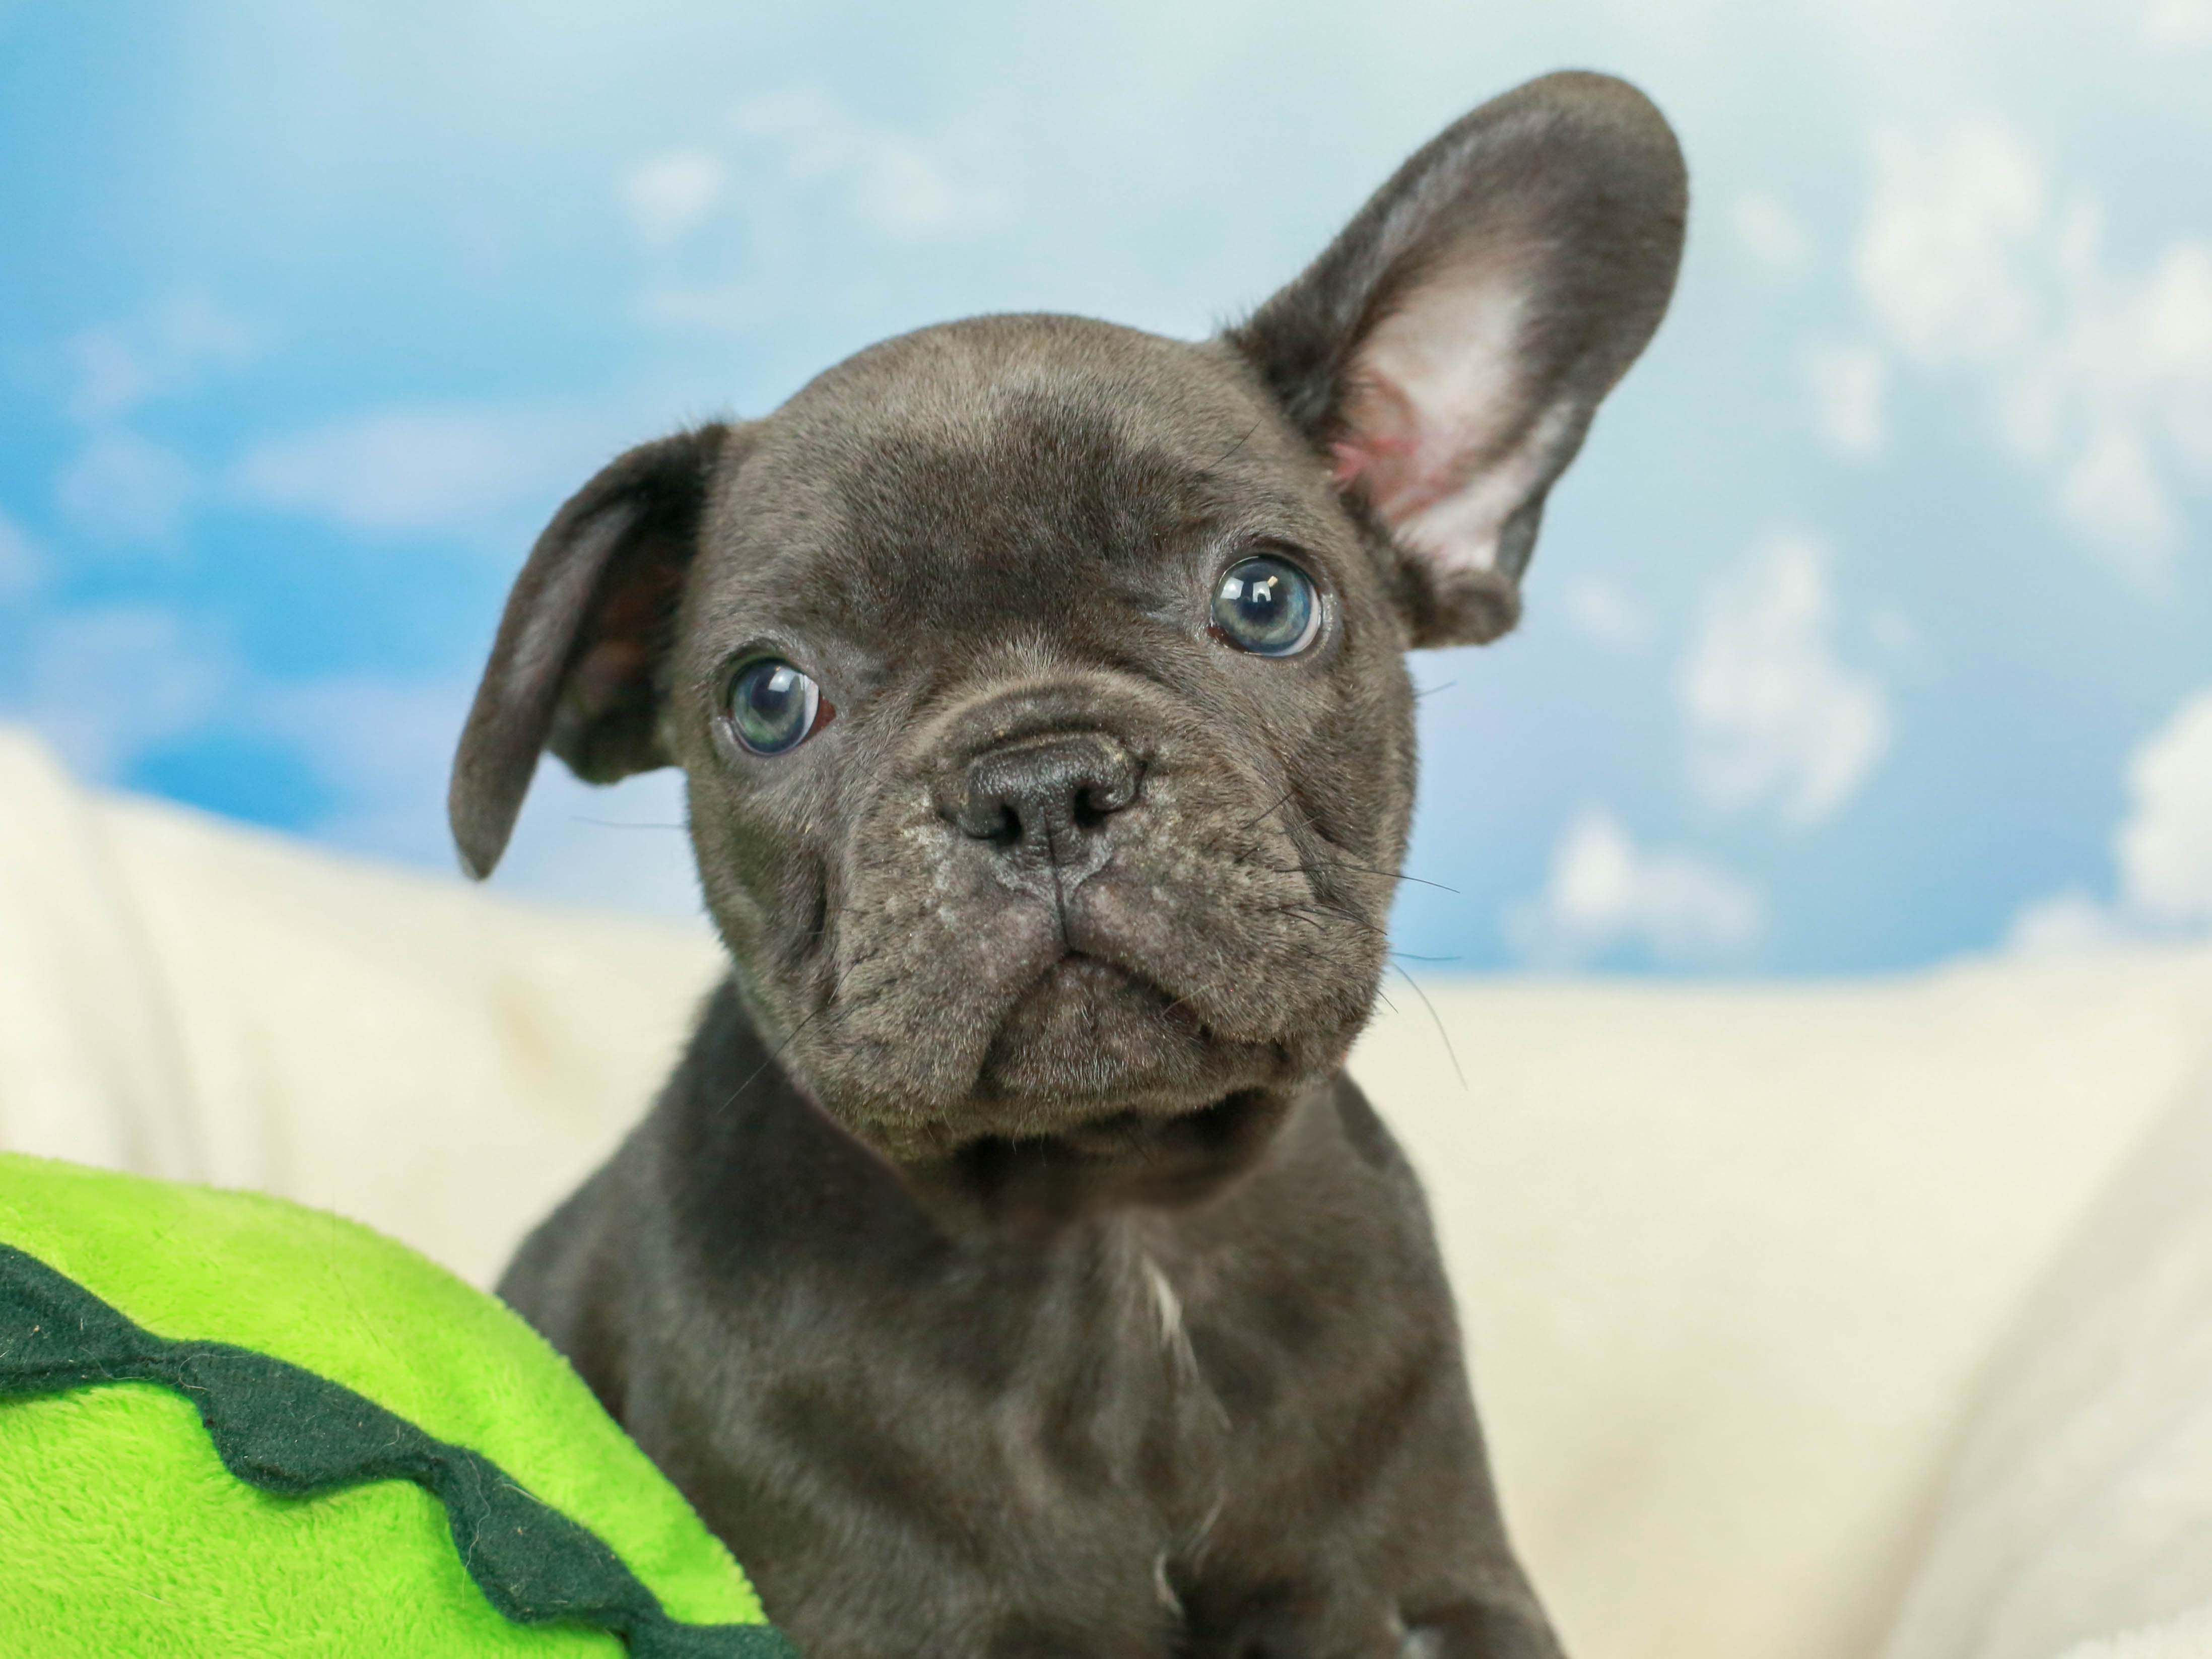 The Baby Frenchie Is So Cute But He Is Only Half Listening In